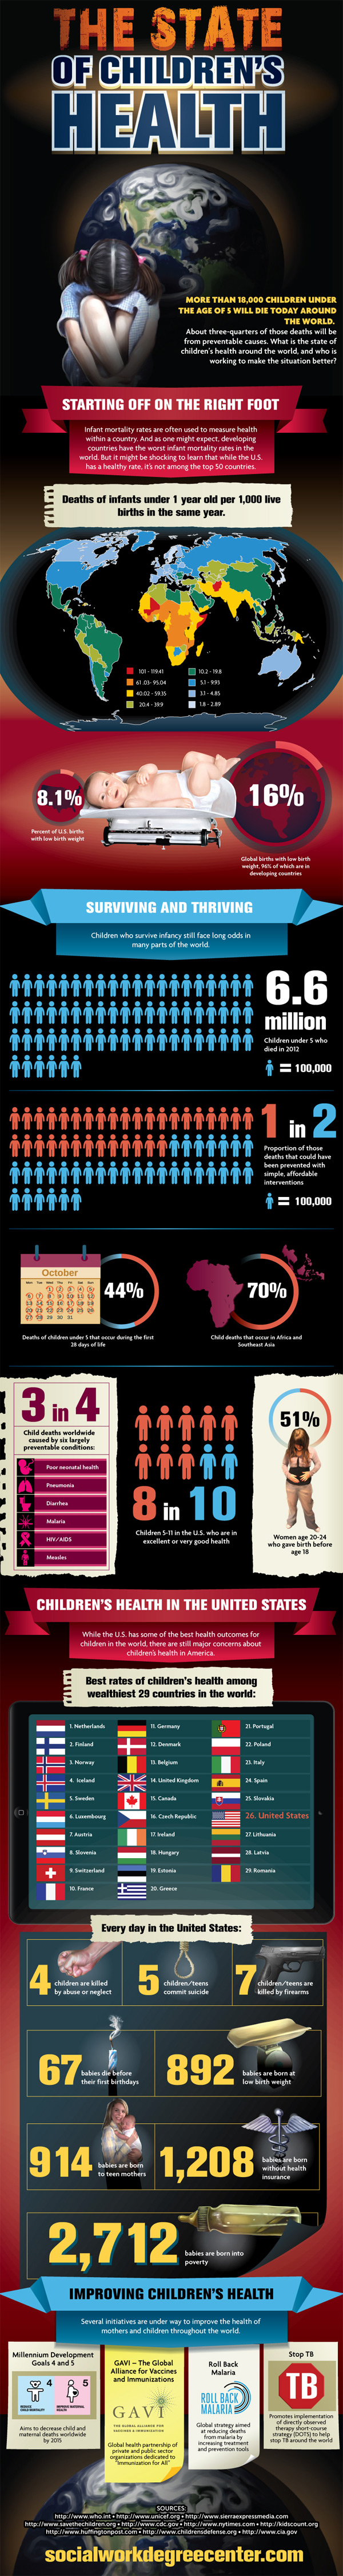 Global Infant Mortality Rate Facts-Infographic